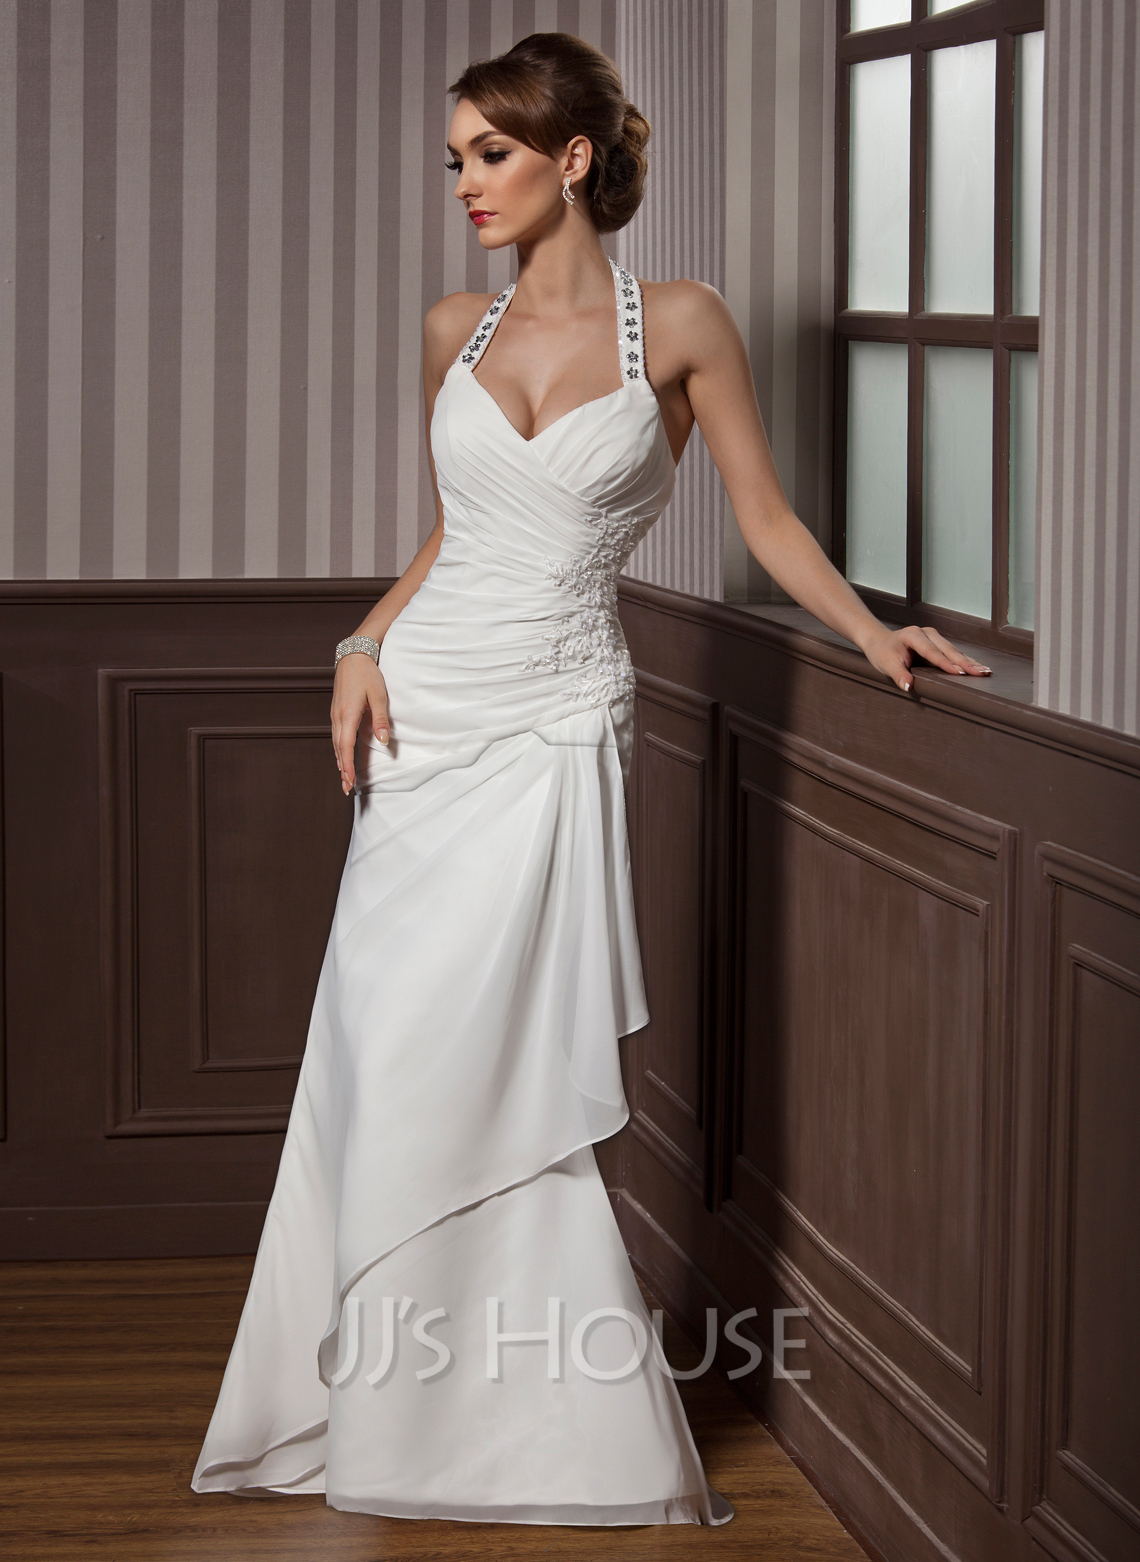 Sheath Column Halter Floor Length Chiffon Satin Wedding Dress With Beading Appliques Lace Sequins Cascading Ruffles g jjs house wedding dresses Home Wedding Dresses Loading zoom